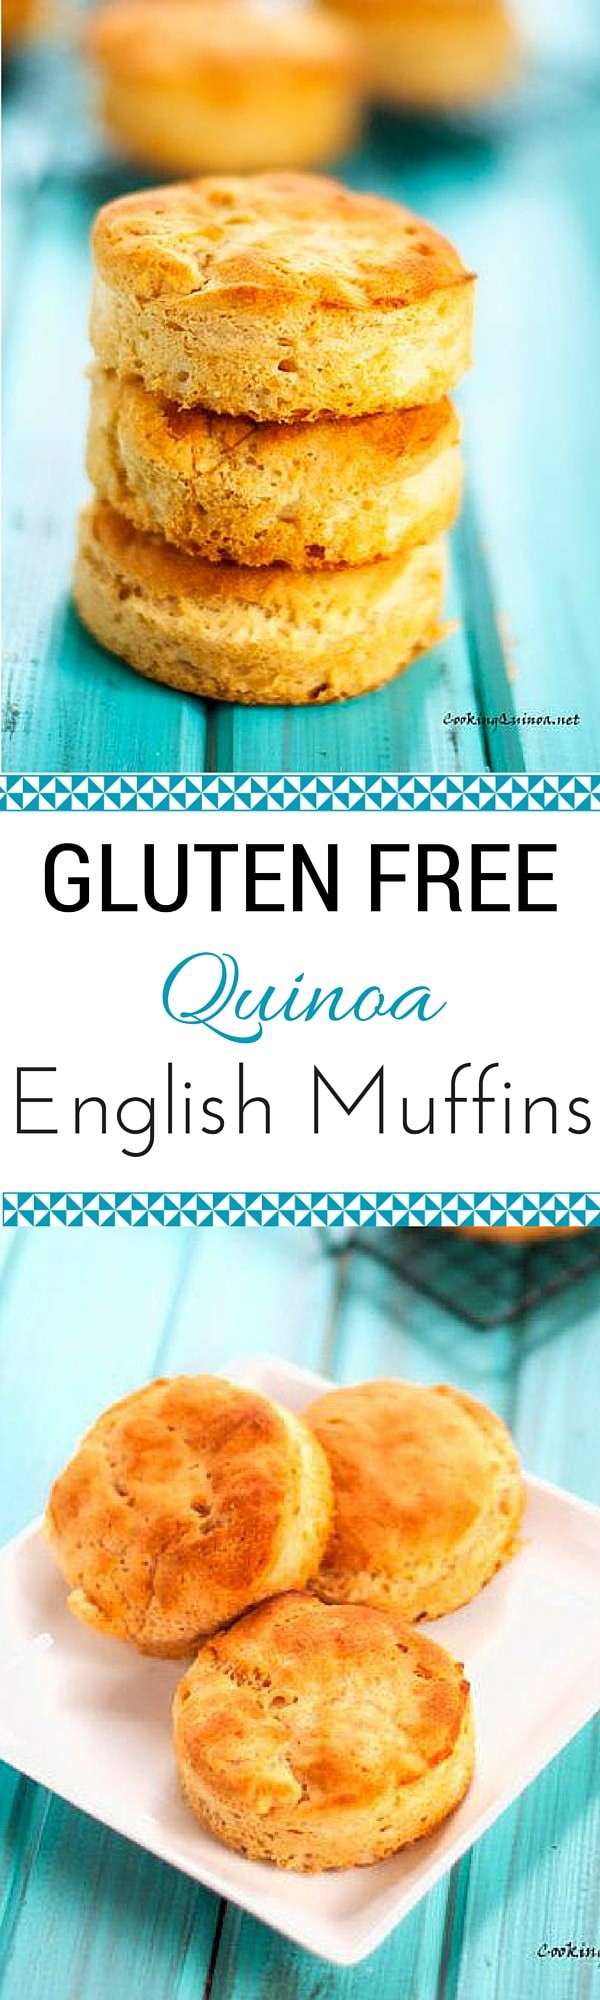 Gluten Free Quinoa English Muffins - It is hard to believe these English Muffins are gluten free.  They are a family favorite!  I have to make a double batch and freeze.  So good! - WendyPolisi.com